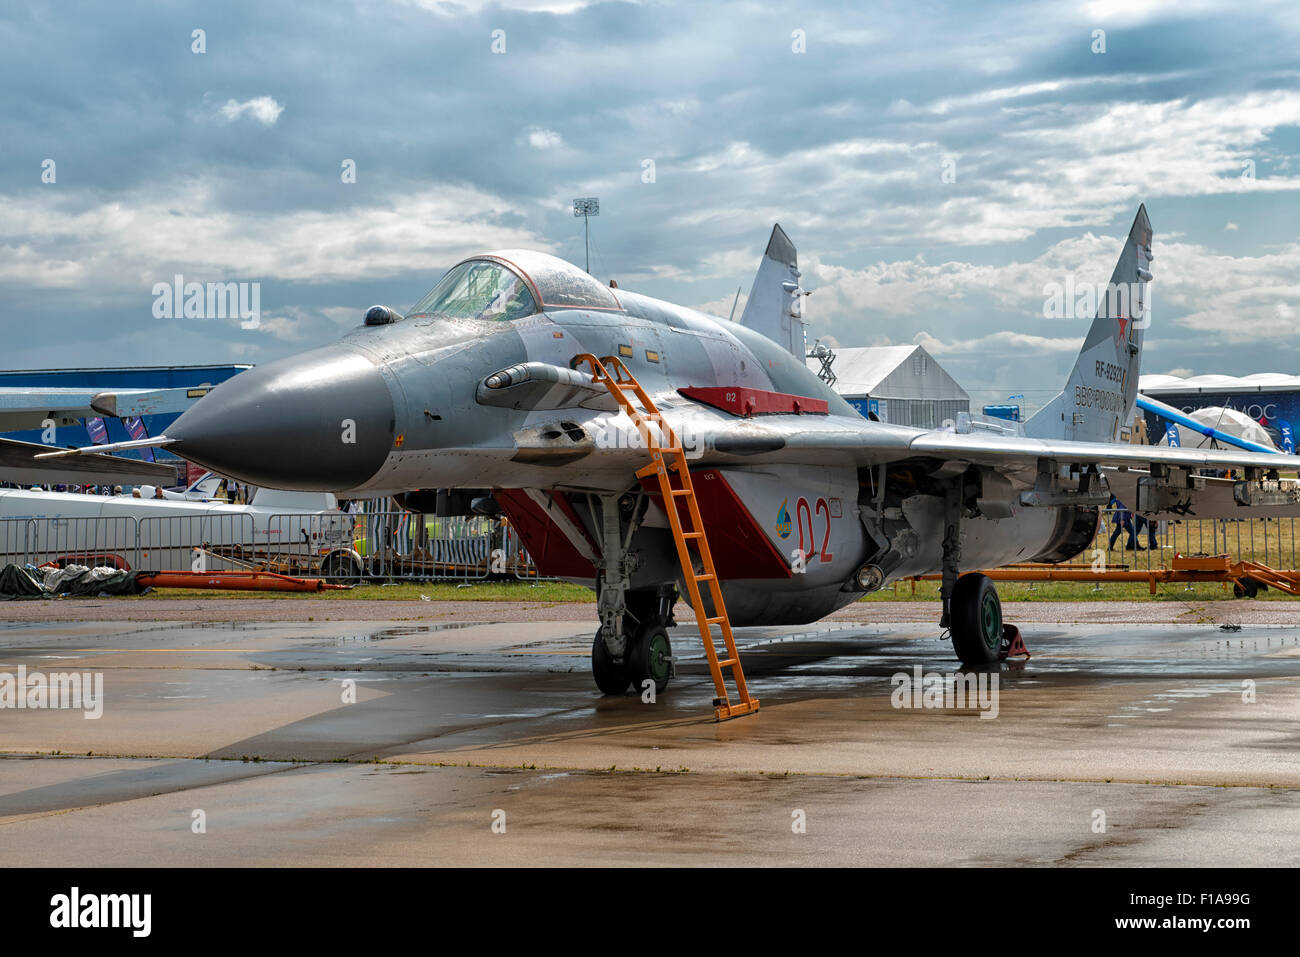 Mig 29smt fulcrum at maks 2015 air show in moscow russia for Airplane show